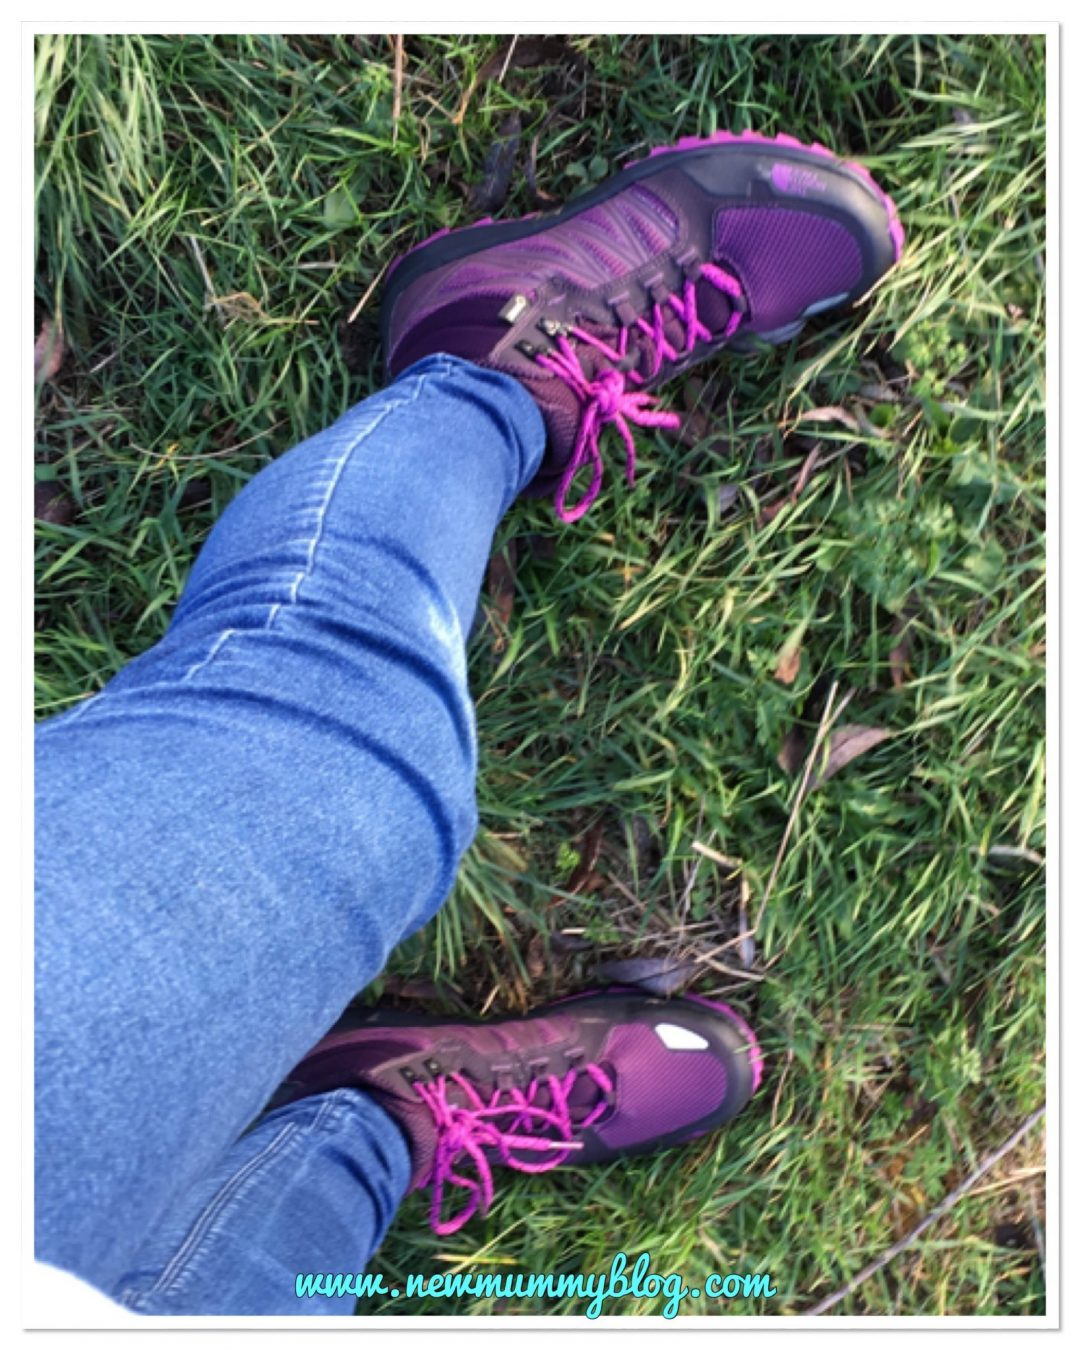 Out walking wearing my new The North Face walking boots in pink/purple/black from Blacks and Millets